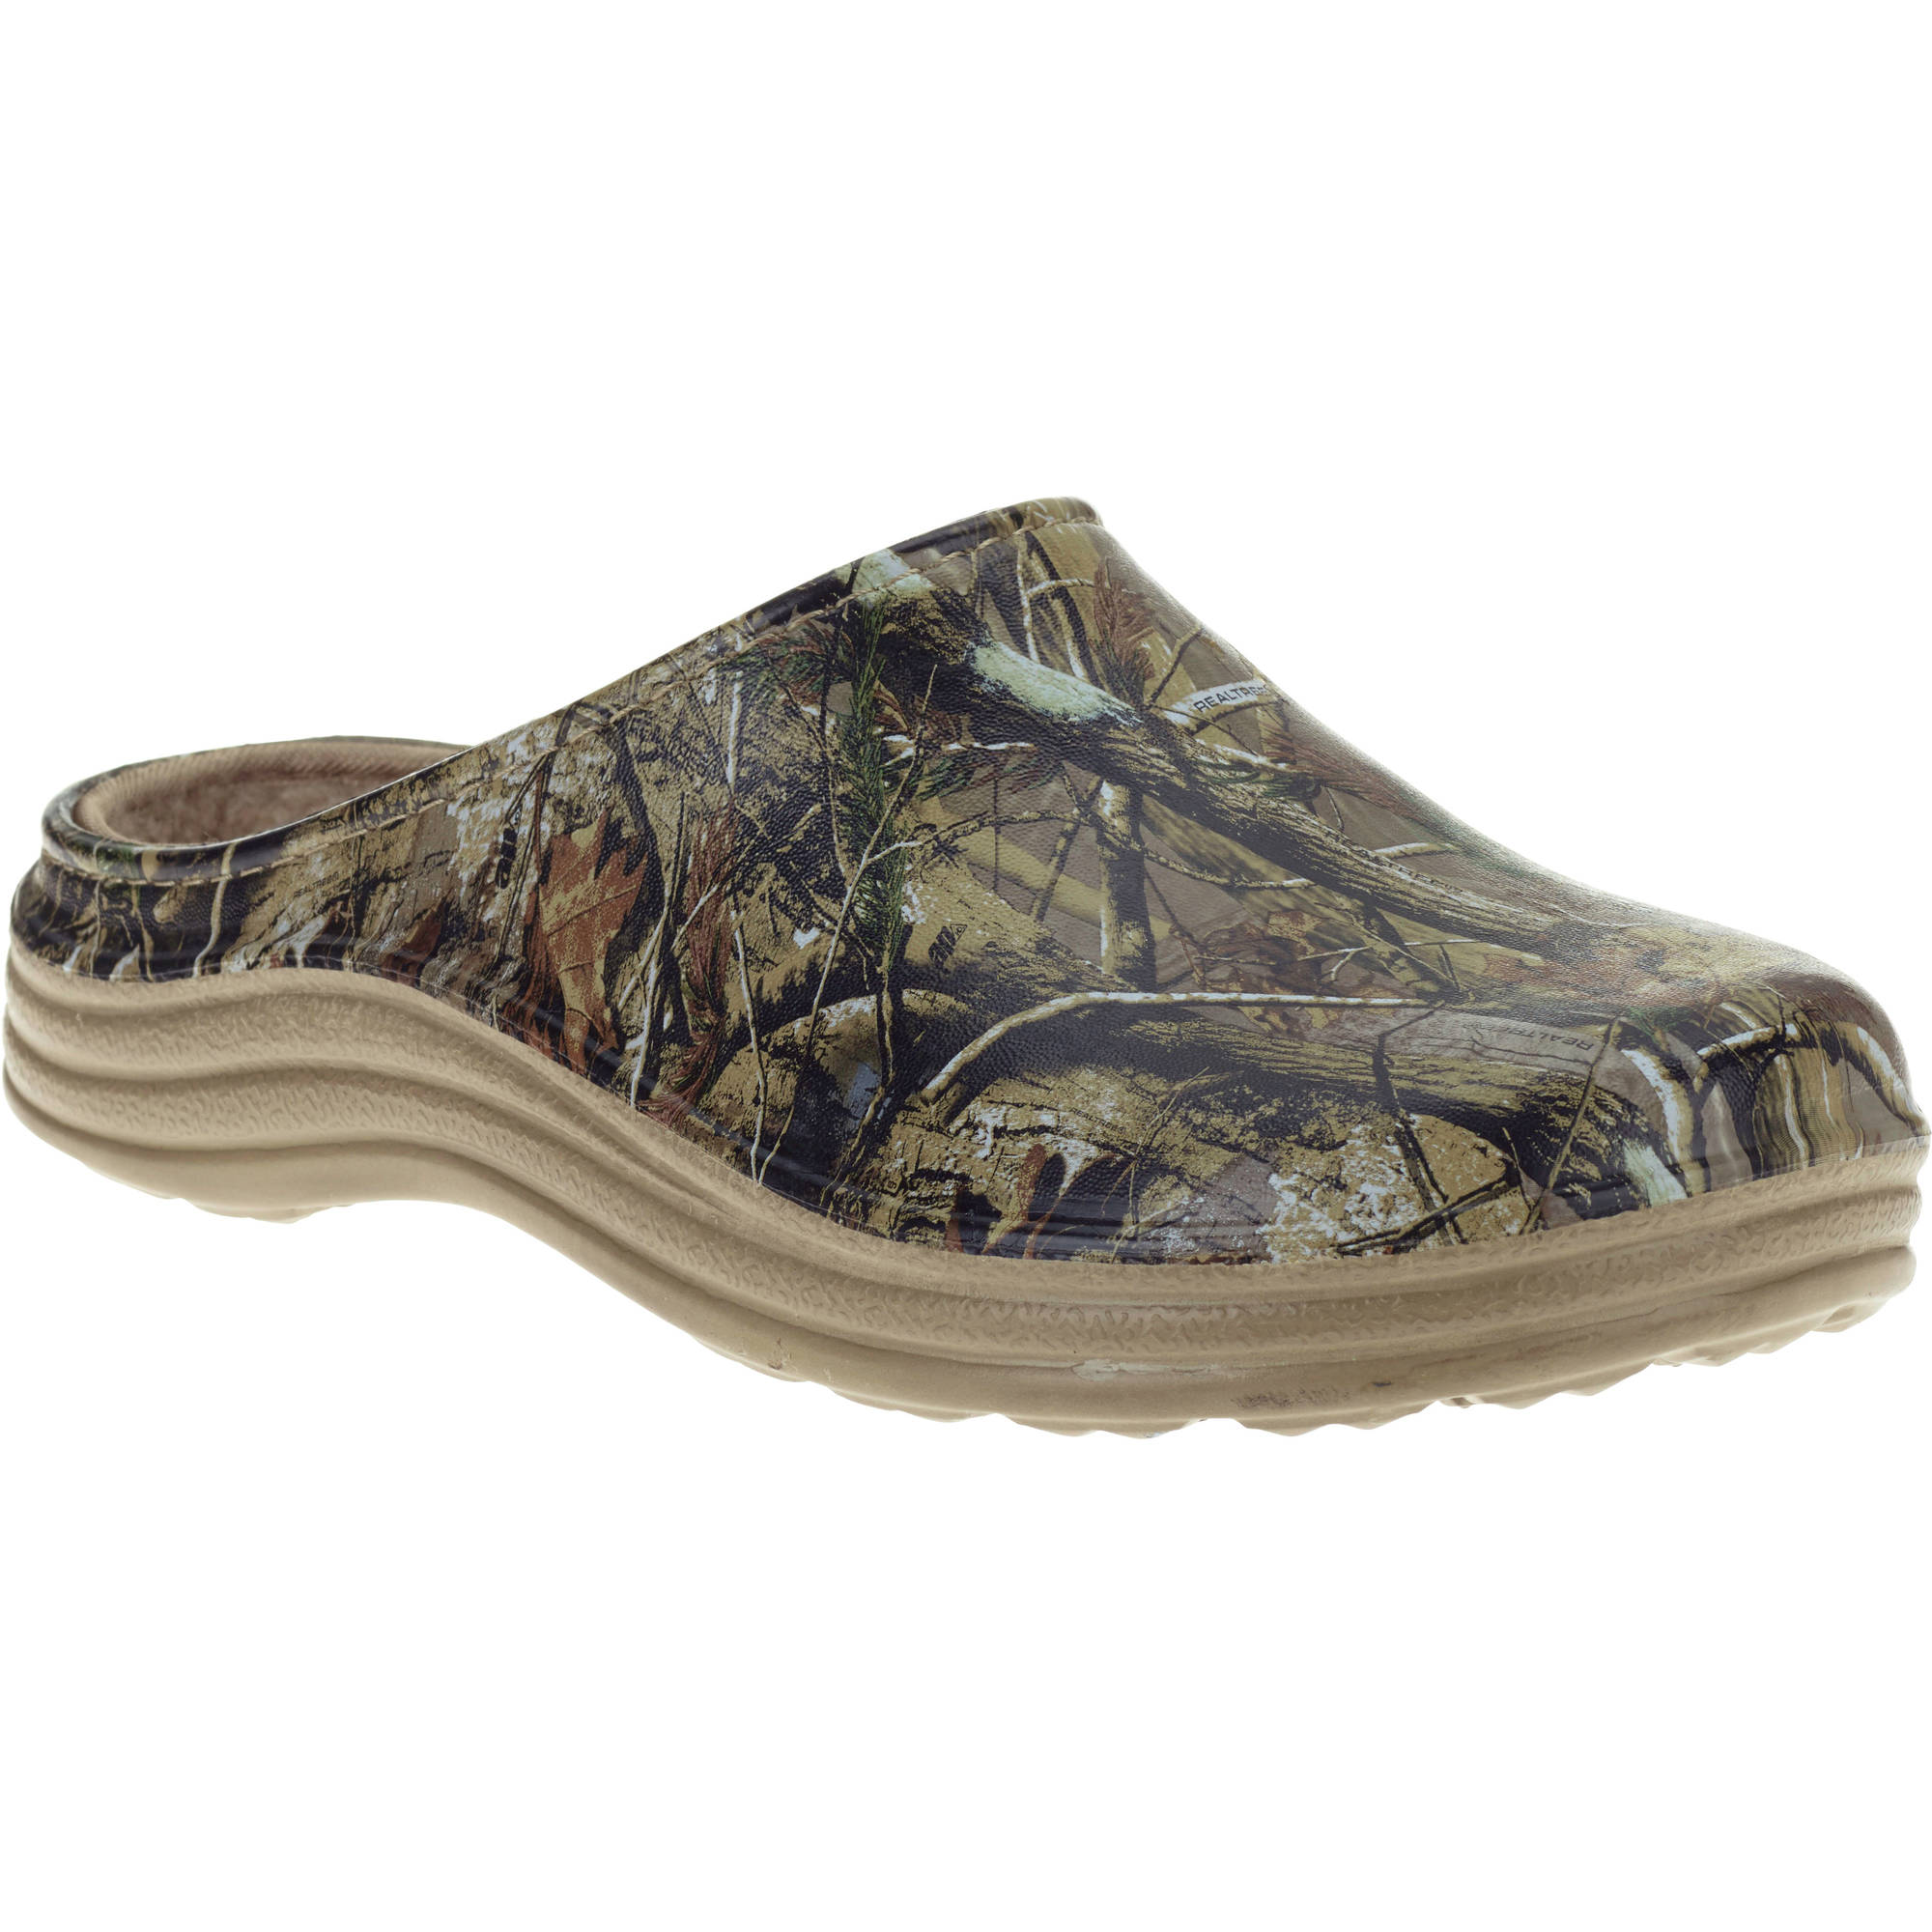 Realtree Mens Lined Clog